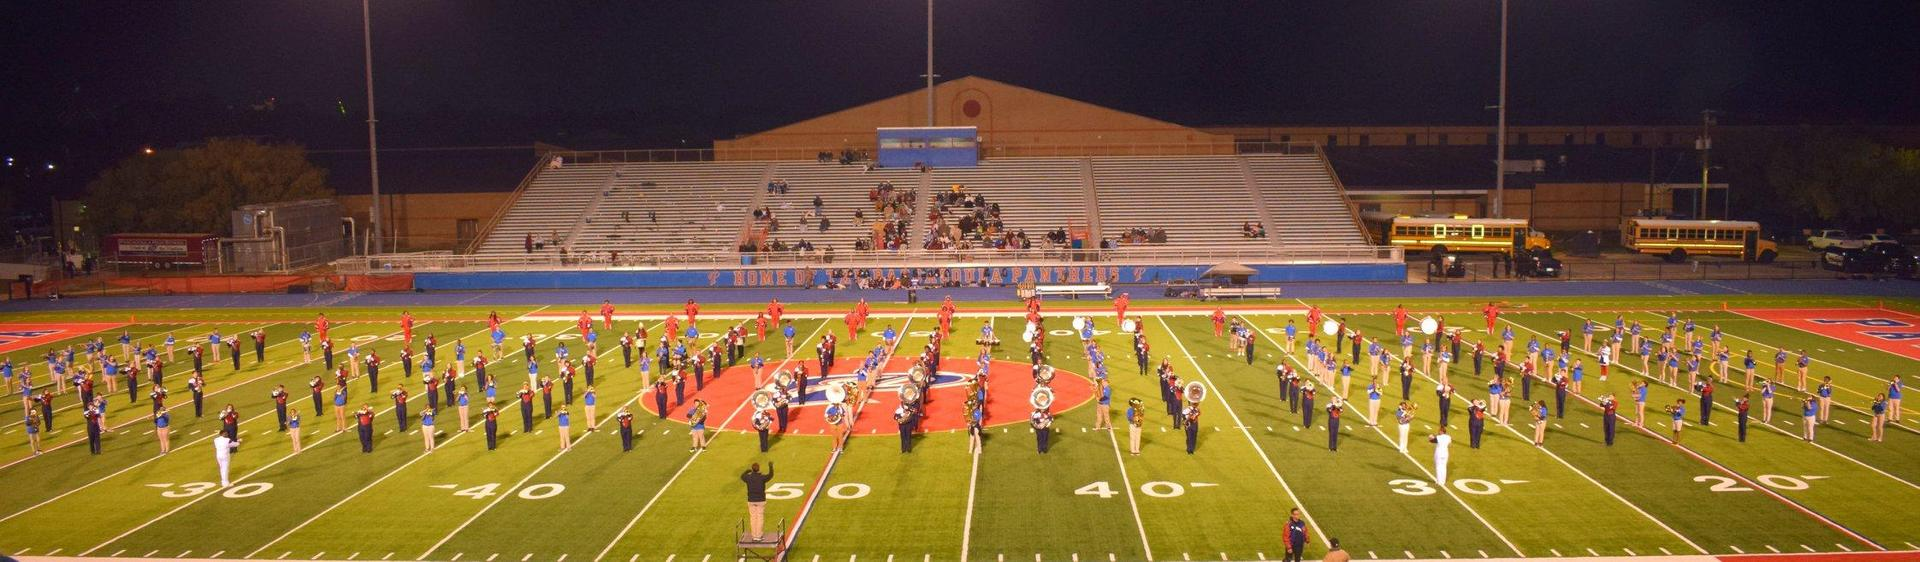 Pascagoula Bands Take the Field, 358 Students Strong